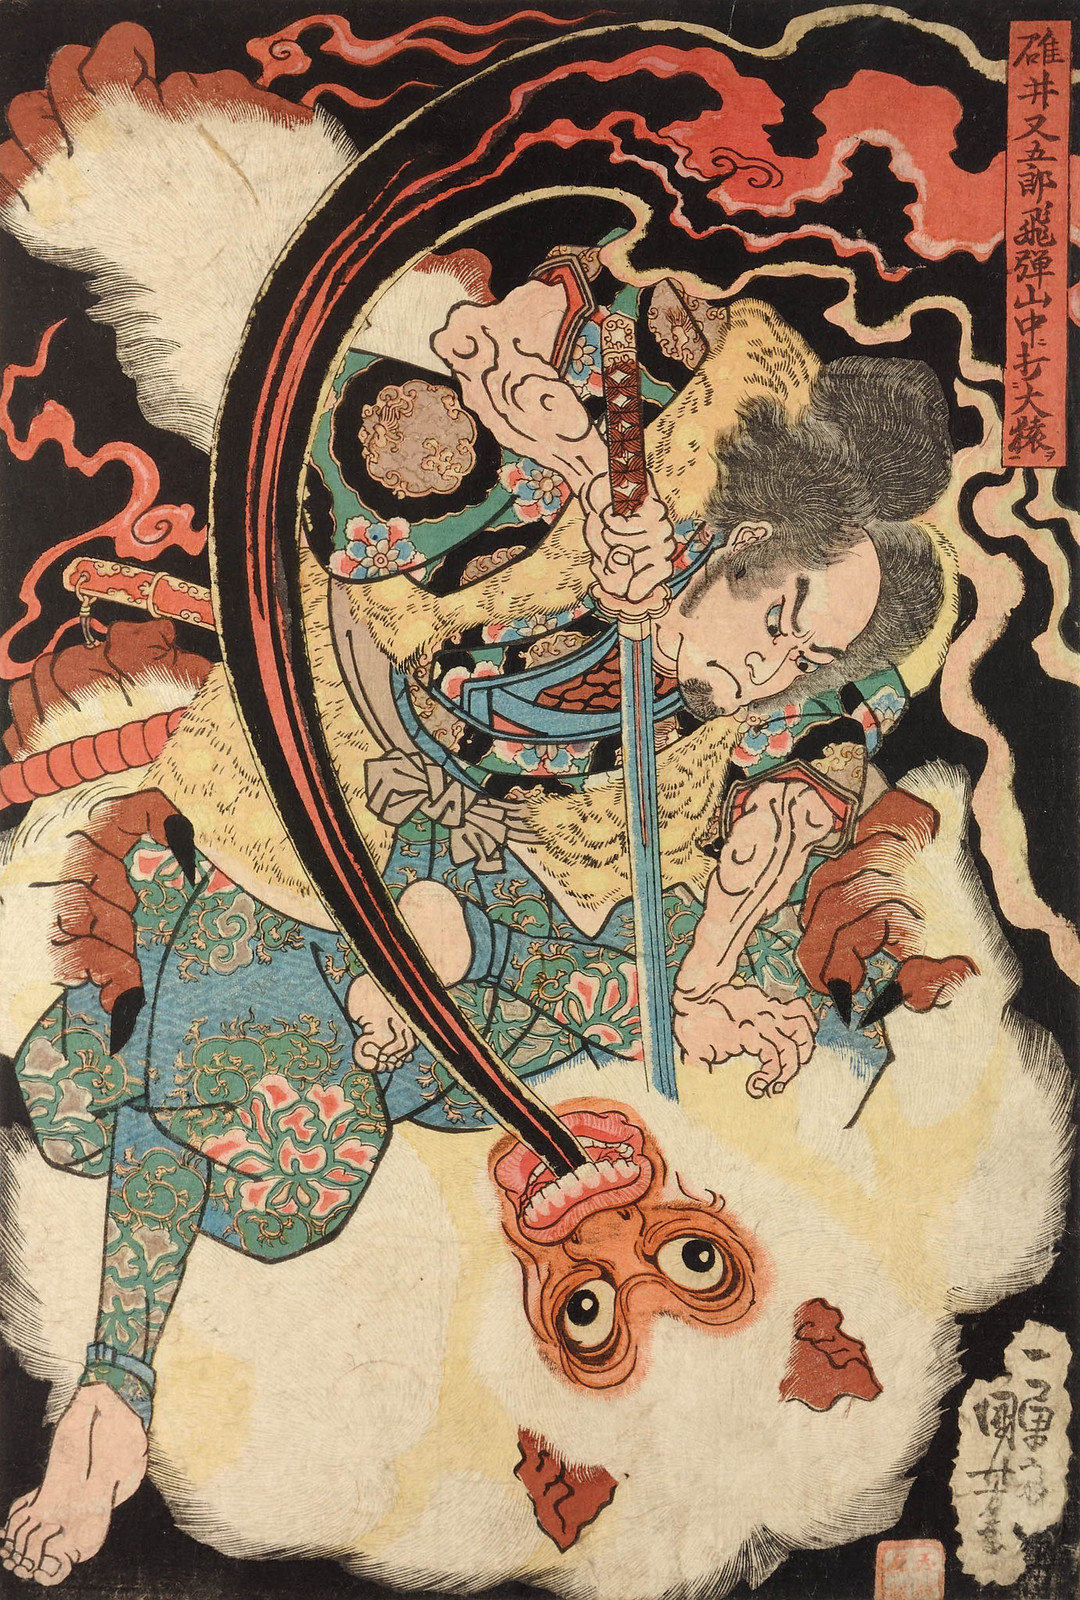 Utagawa Kuniyoshi - Usui Matagoro slays a giant white monkey in the mountains of Hida, a long stream of black smoke curling up from the monster's mouth. Edo Period